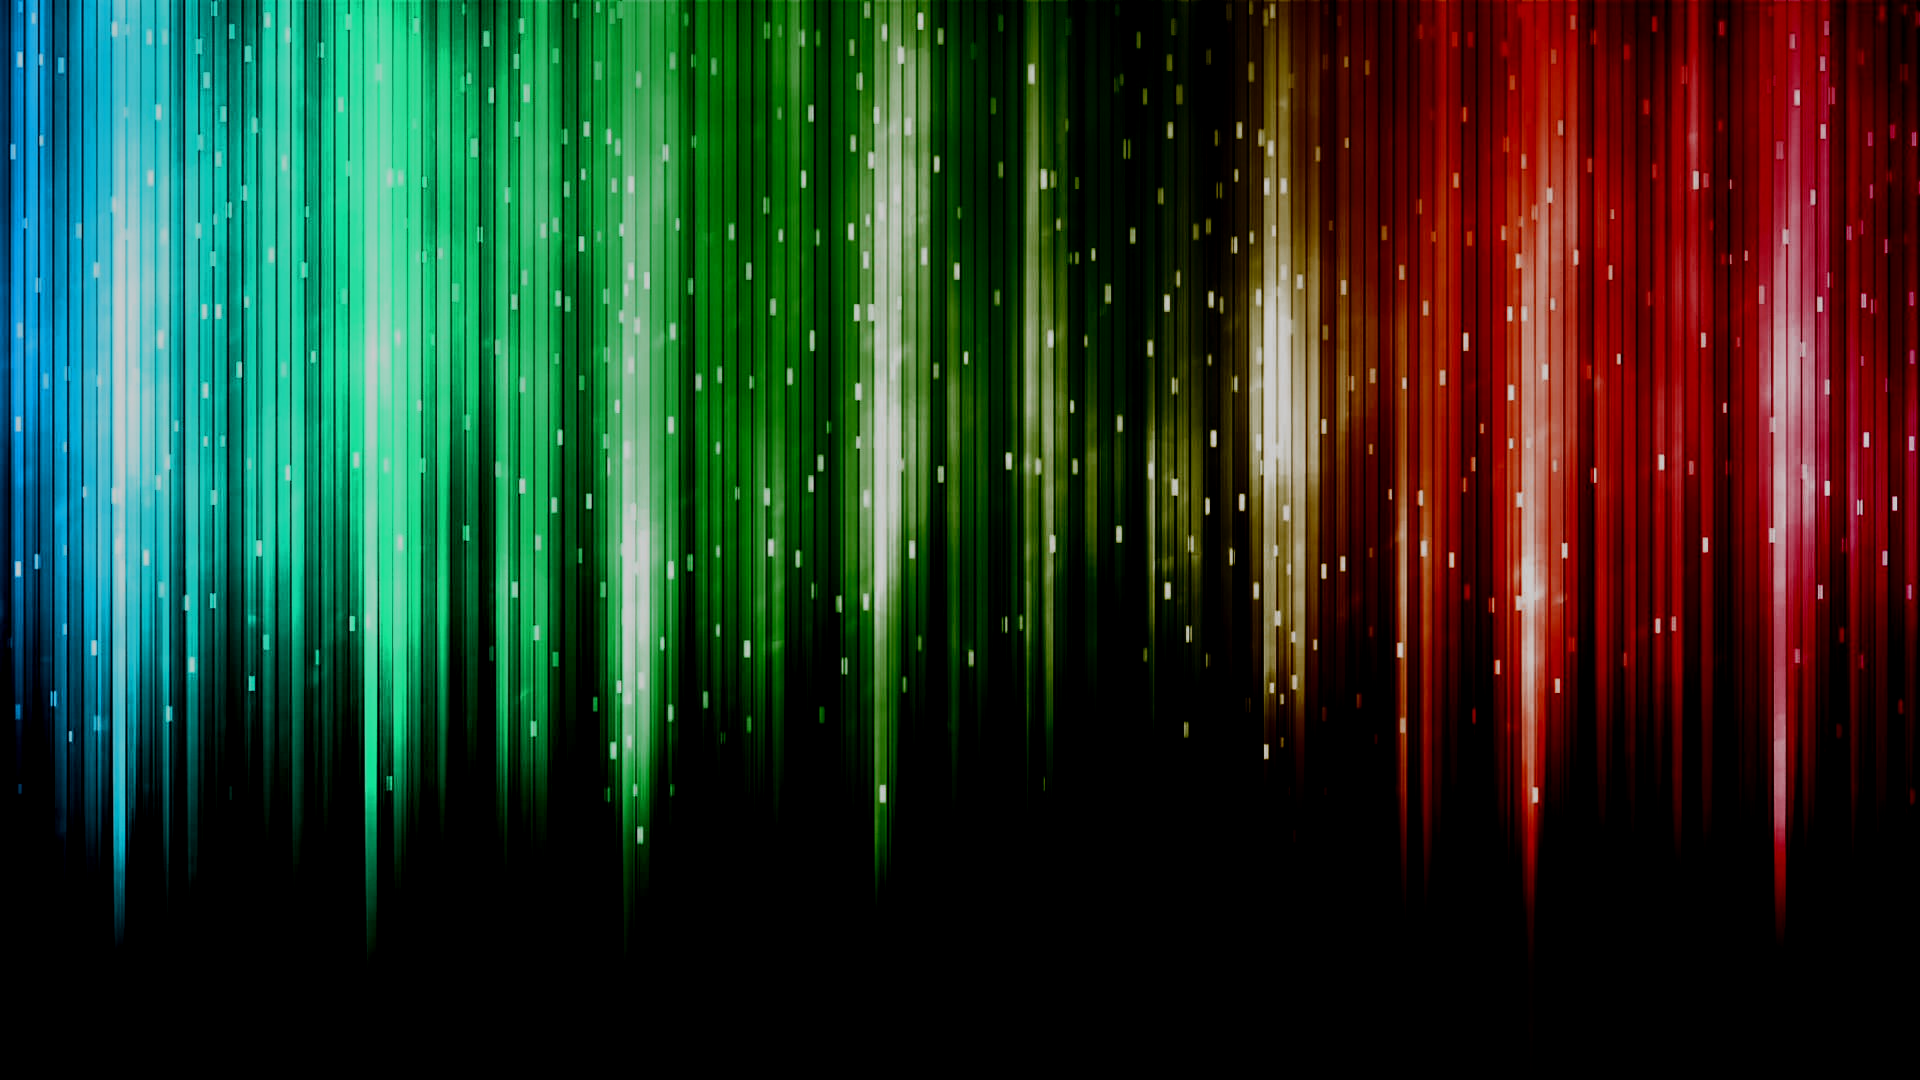 Abstract Rainbow Background   Wallpaper 31290 1920x1080